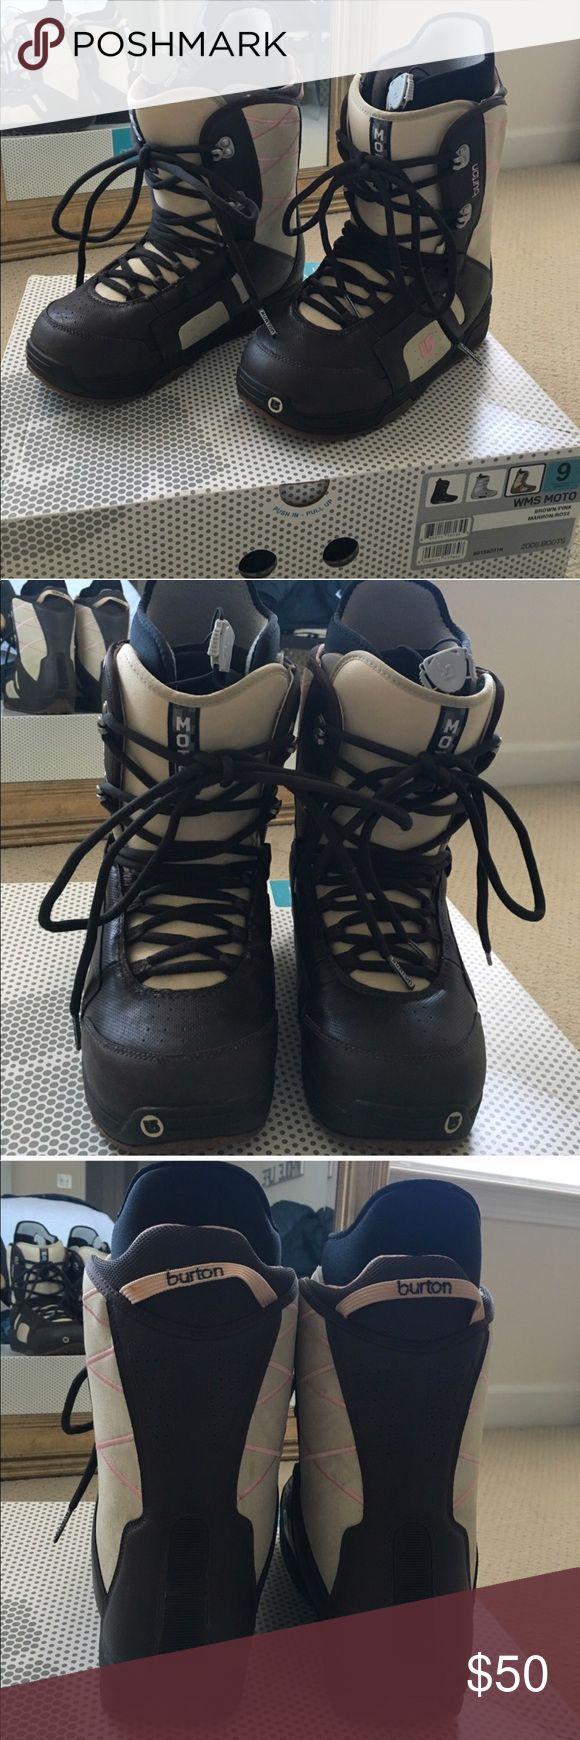 Burton Moto Women's Snowboard Boots Get ready for winter season!! Gently used and in great condition. Bought these, but they are the wrong size for my feet. Great boots. I'd be keeping them if they were the right size :( All pull ties are fully functioning. Dark brown, tan, and light pink in color. Comes with the box. No major defects, everything can be seen from the photos. Burton Shoes Winter & Rain Boots